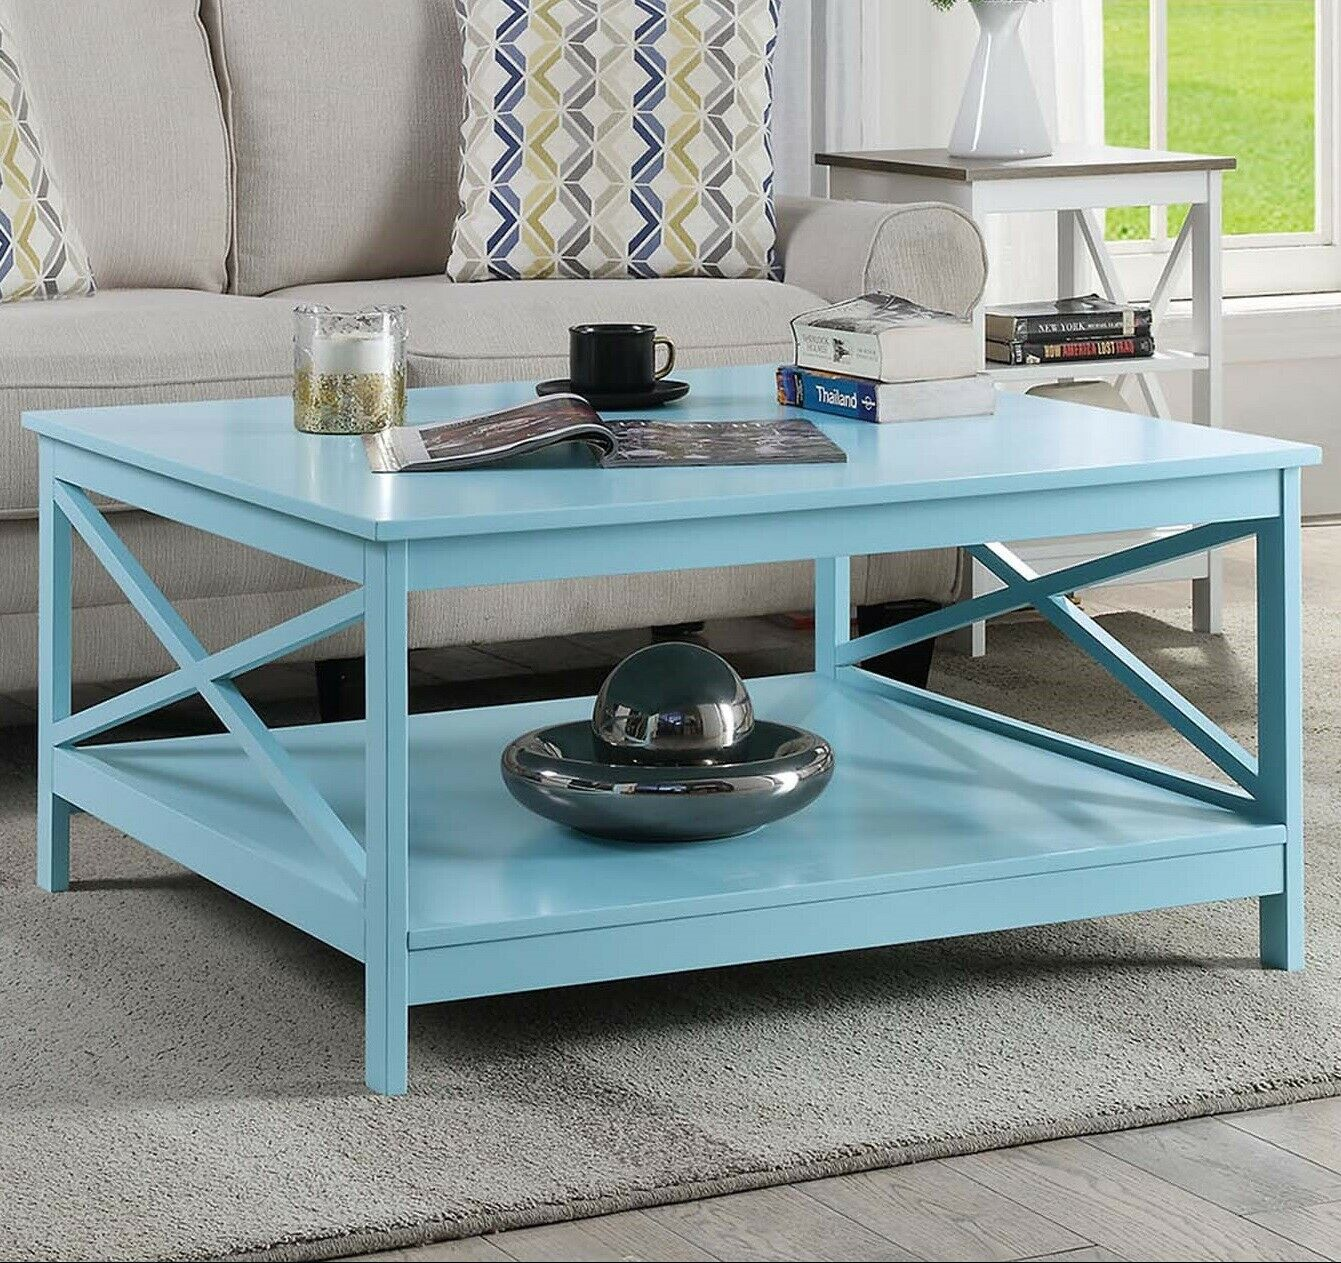 Ottoman Coffee Table Storage Tufted Upholstered Living Room Unique Large Square For Sale Online Ebay